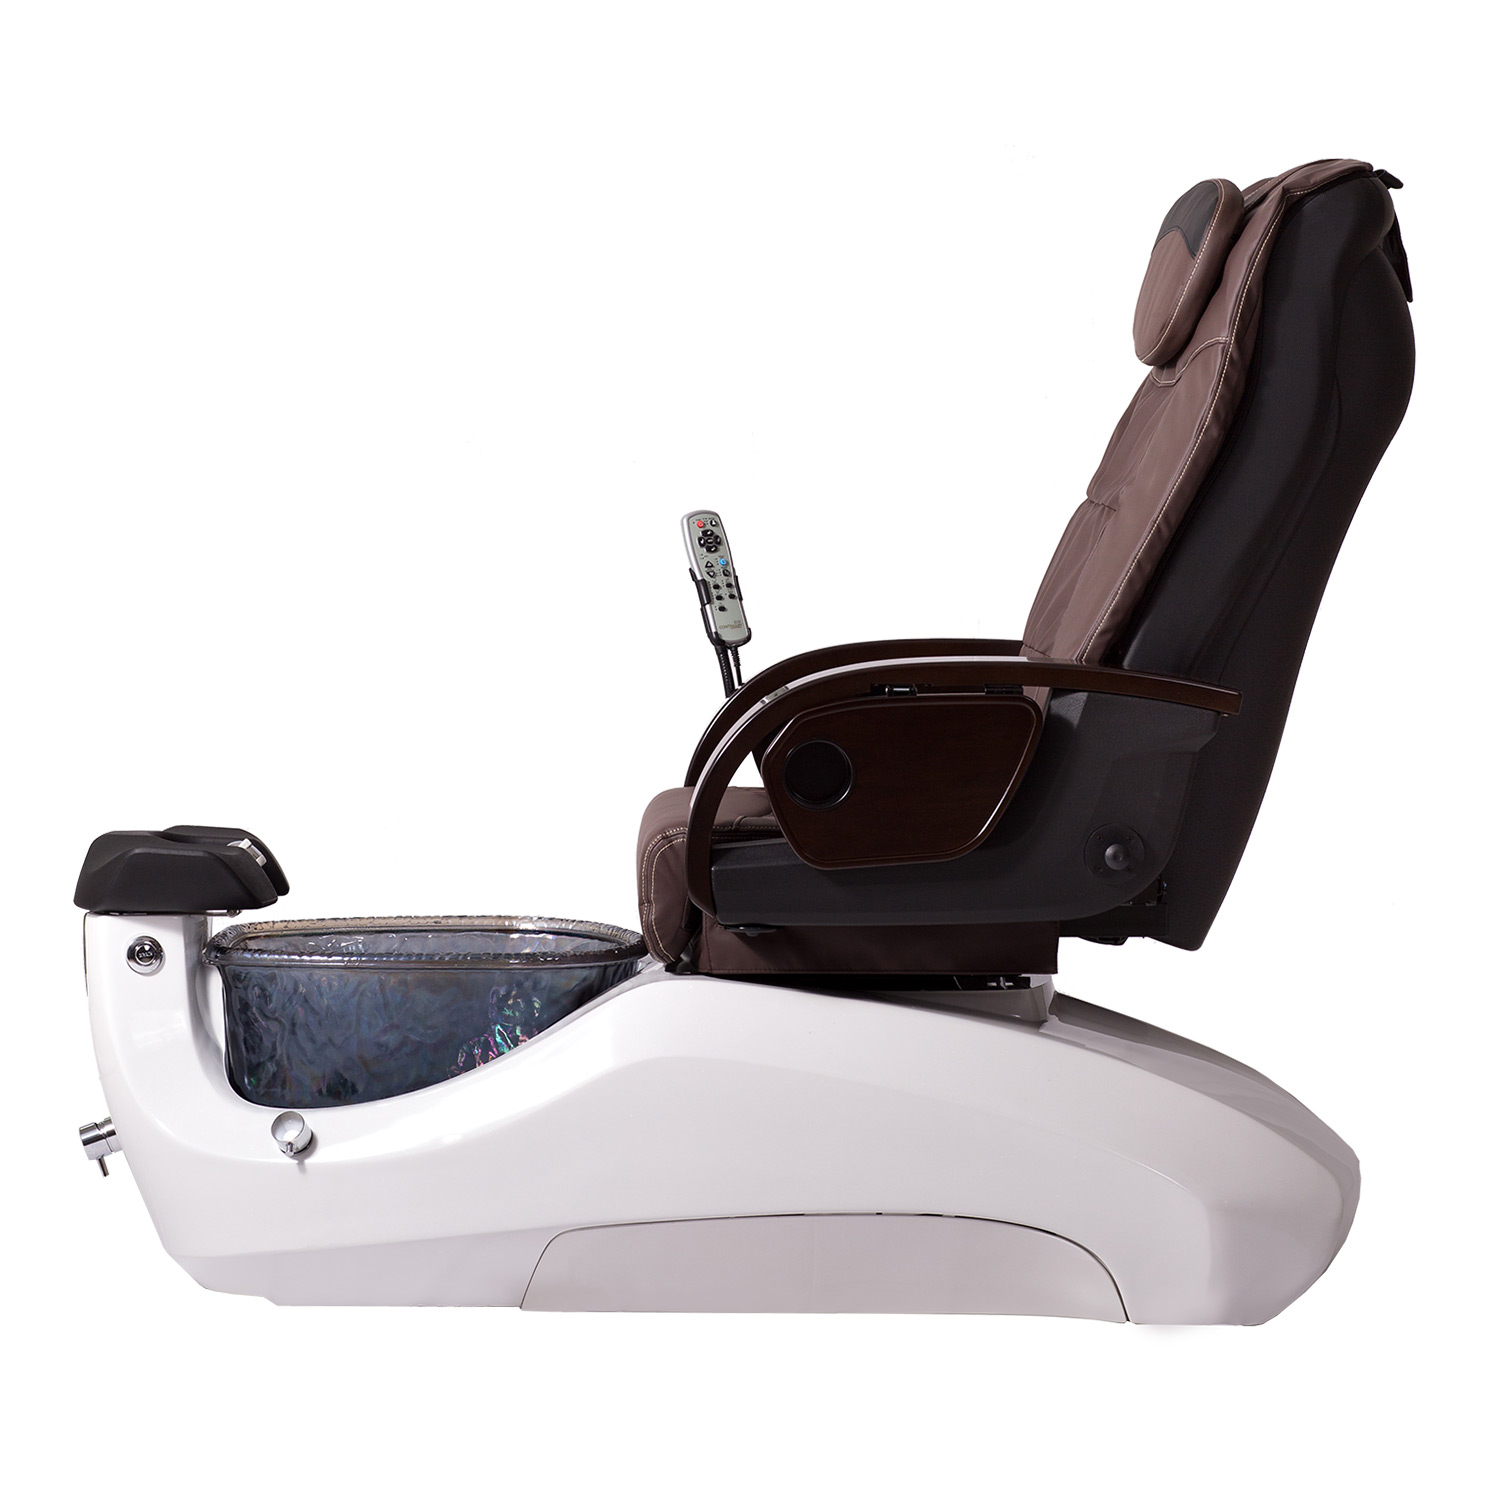 Continuum Bravo with Glass Basin Pedicure Spa Chair alternative product image 6